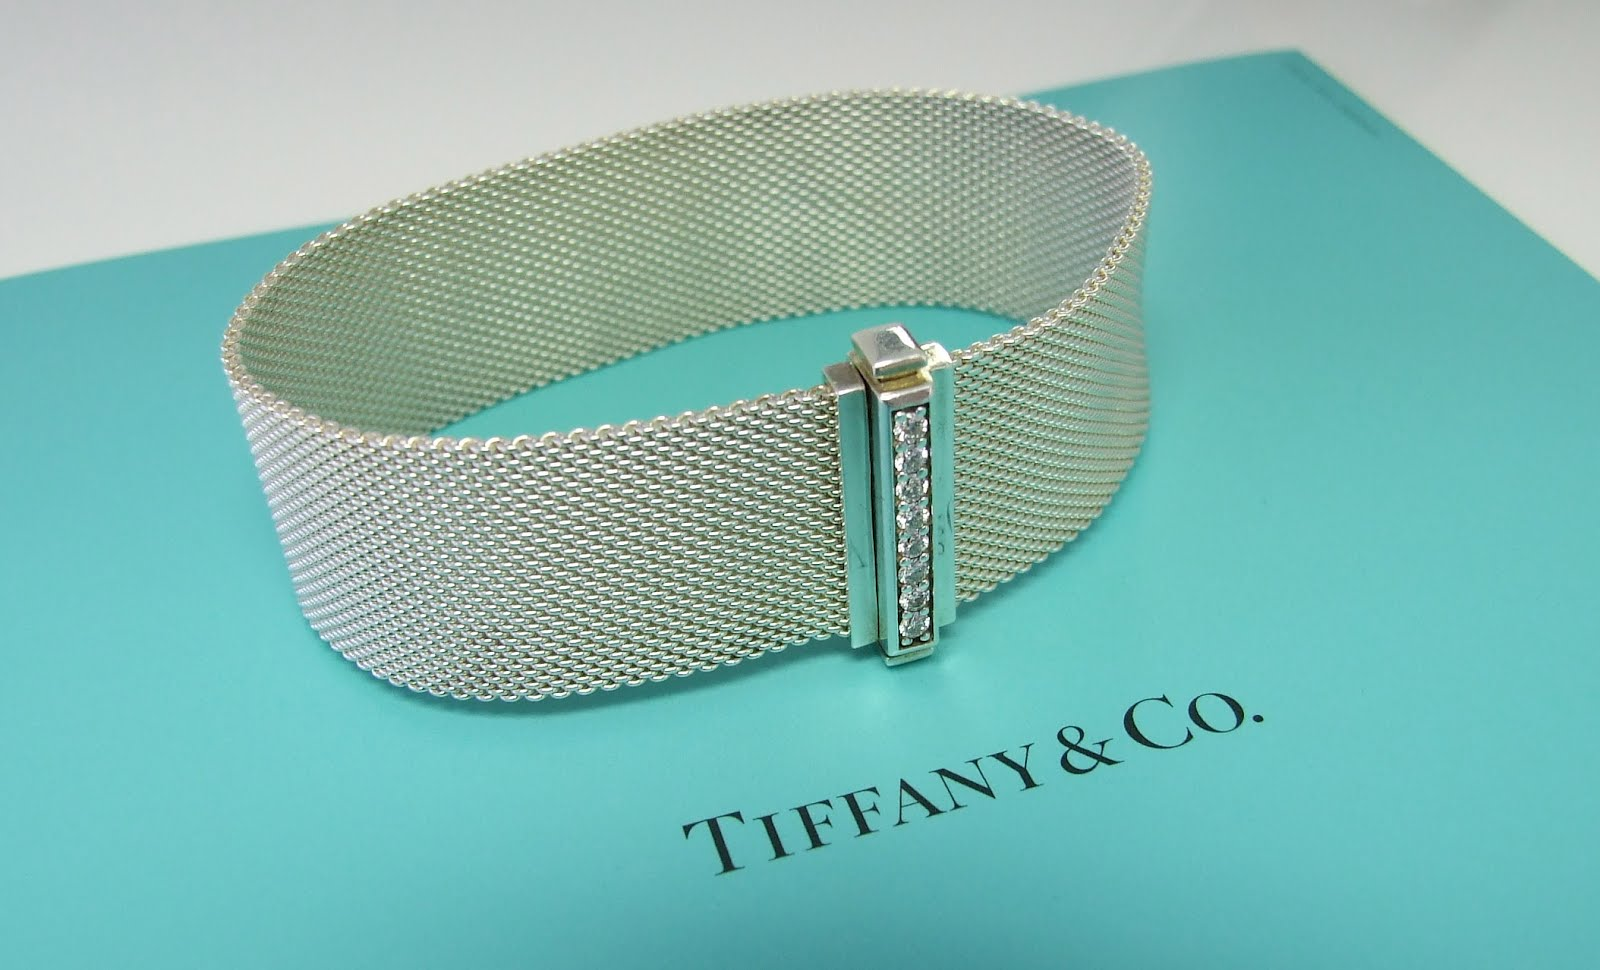 Tiffany Somerset Bracelet, a musthave